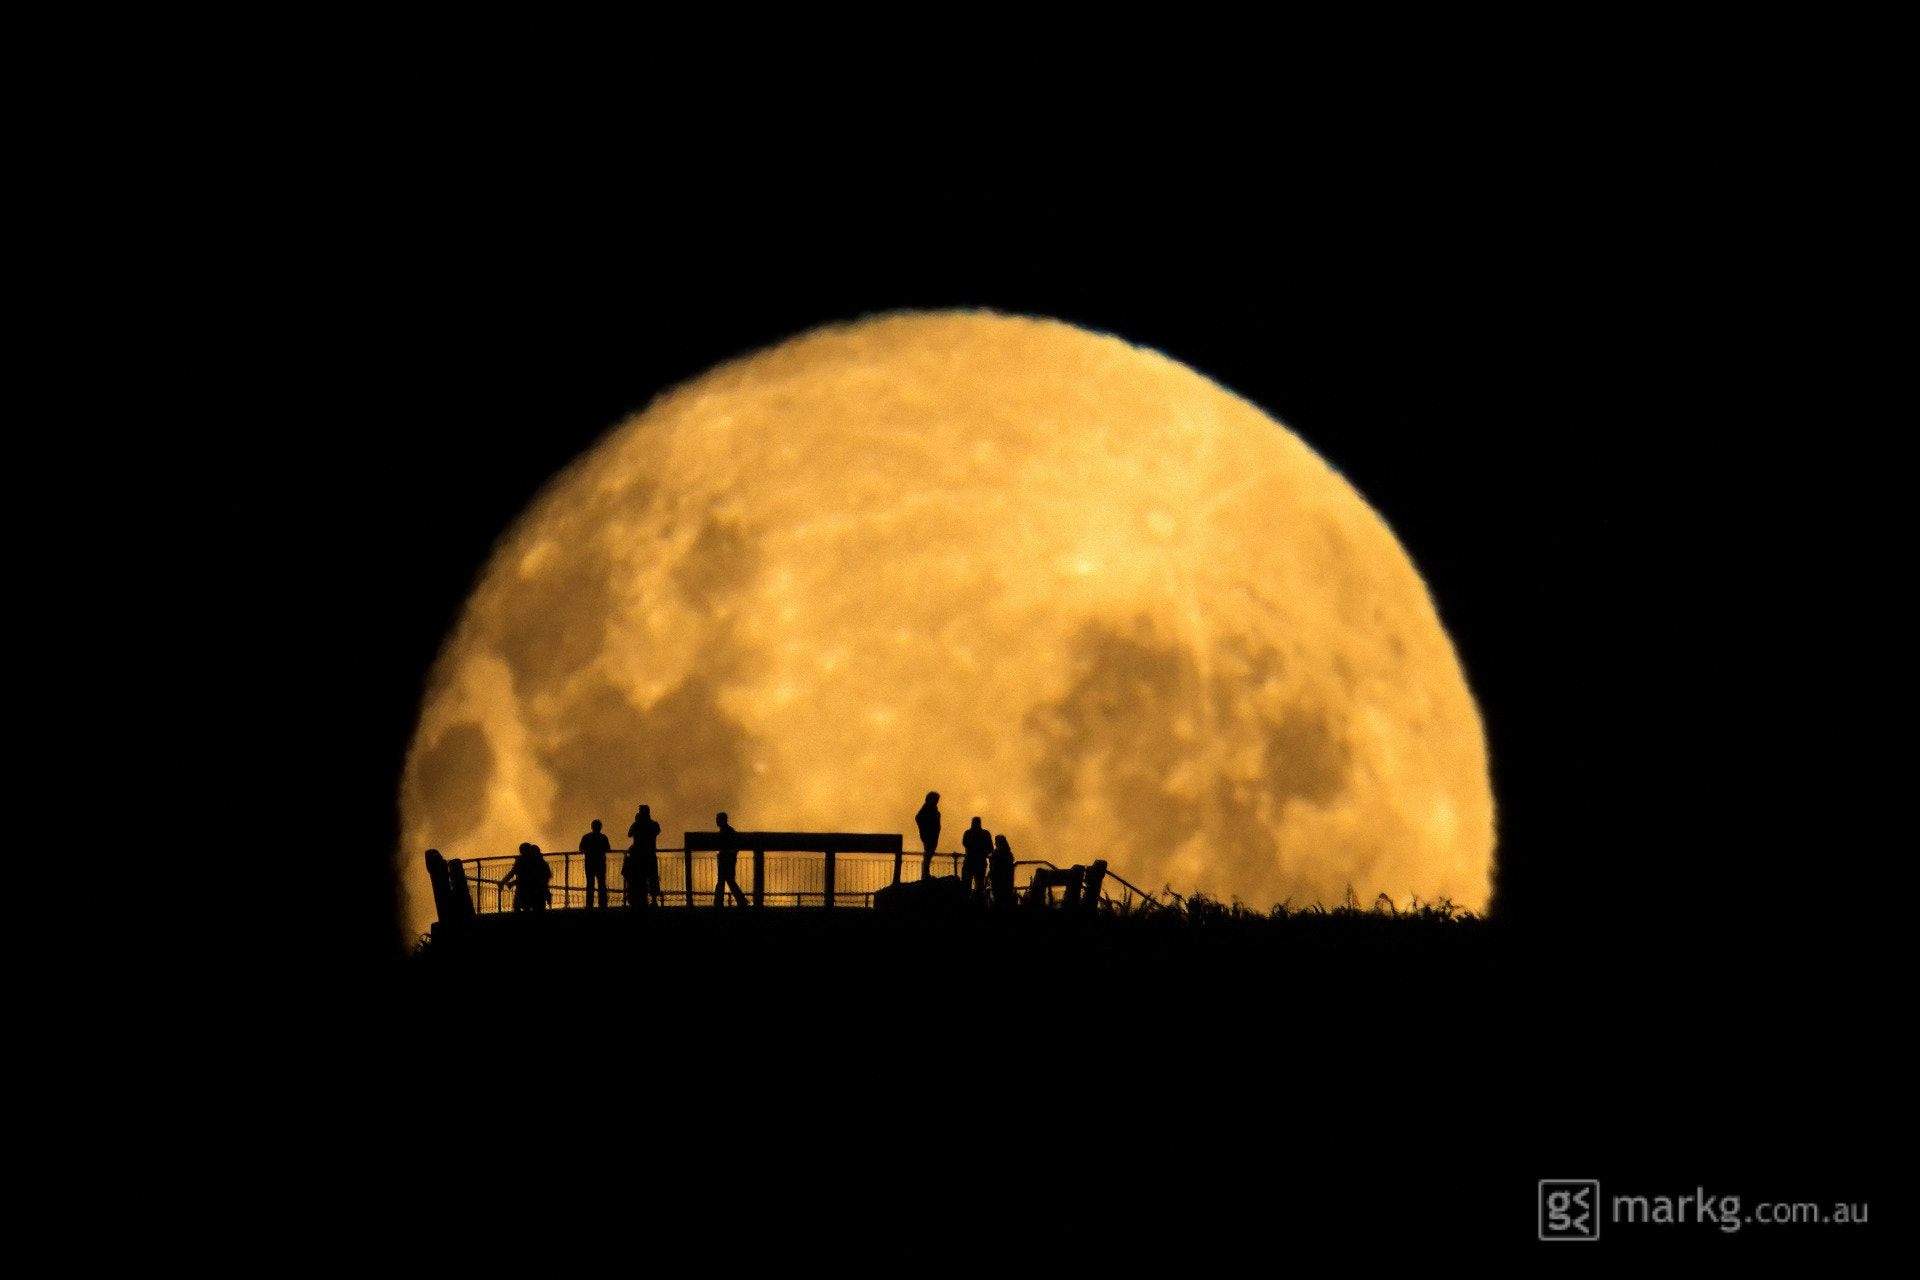 Photograph Moon Silhouettes by Mark Gee on 500px